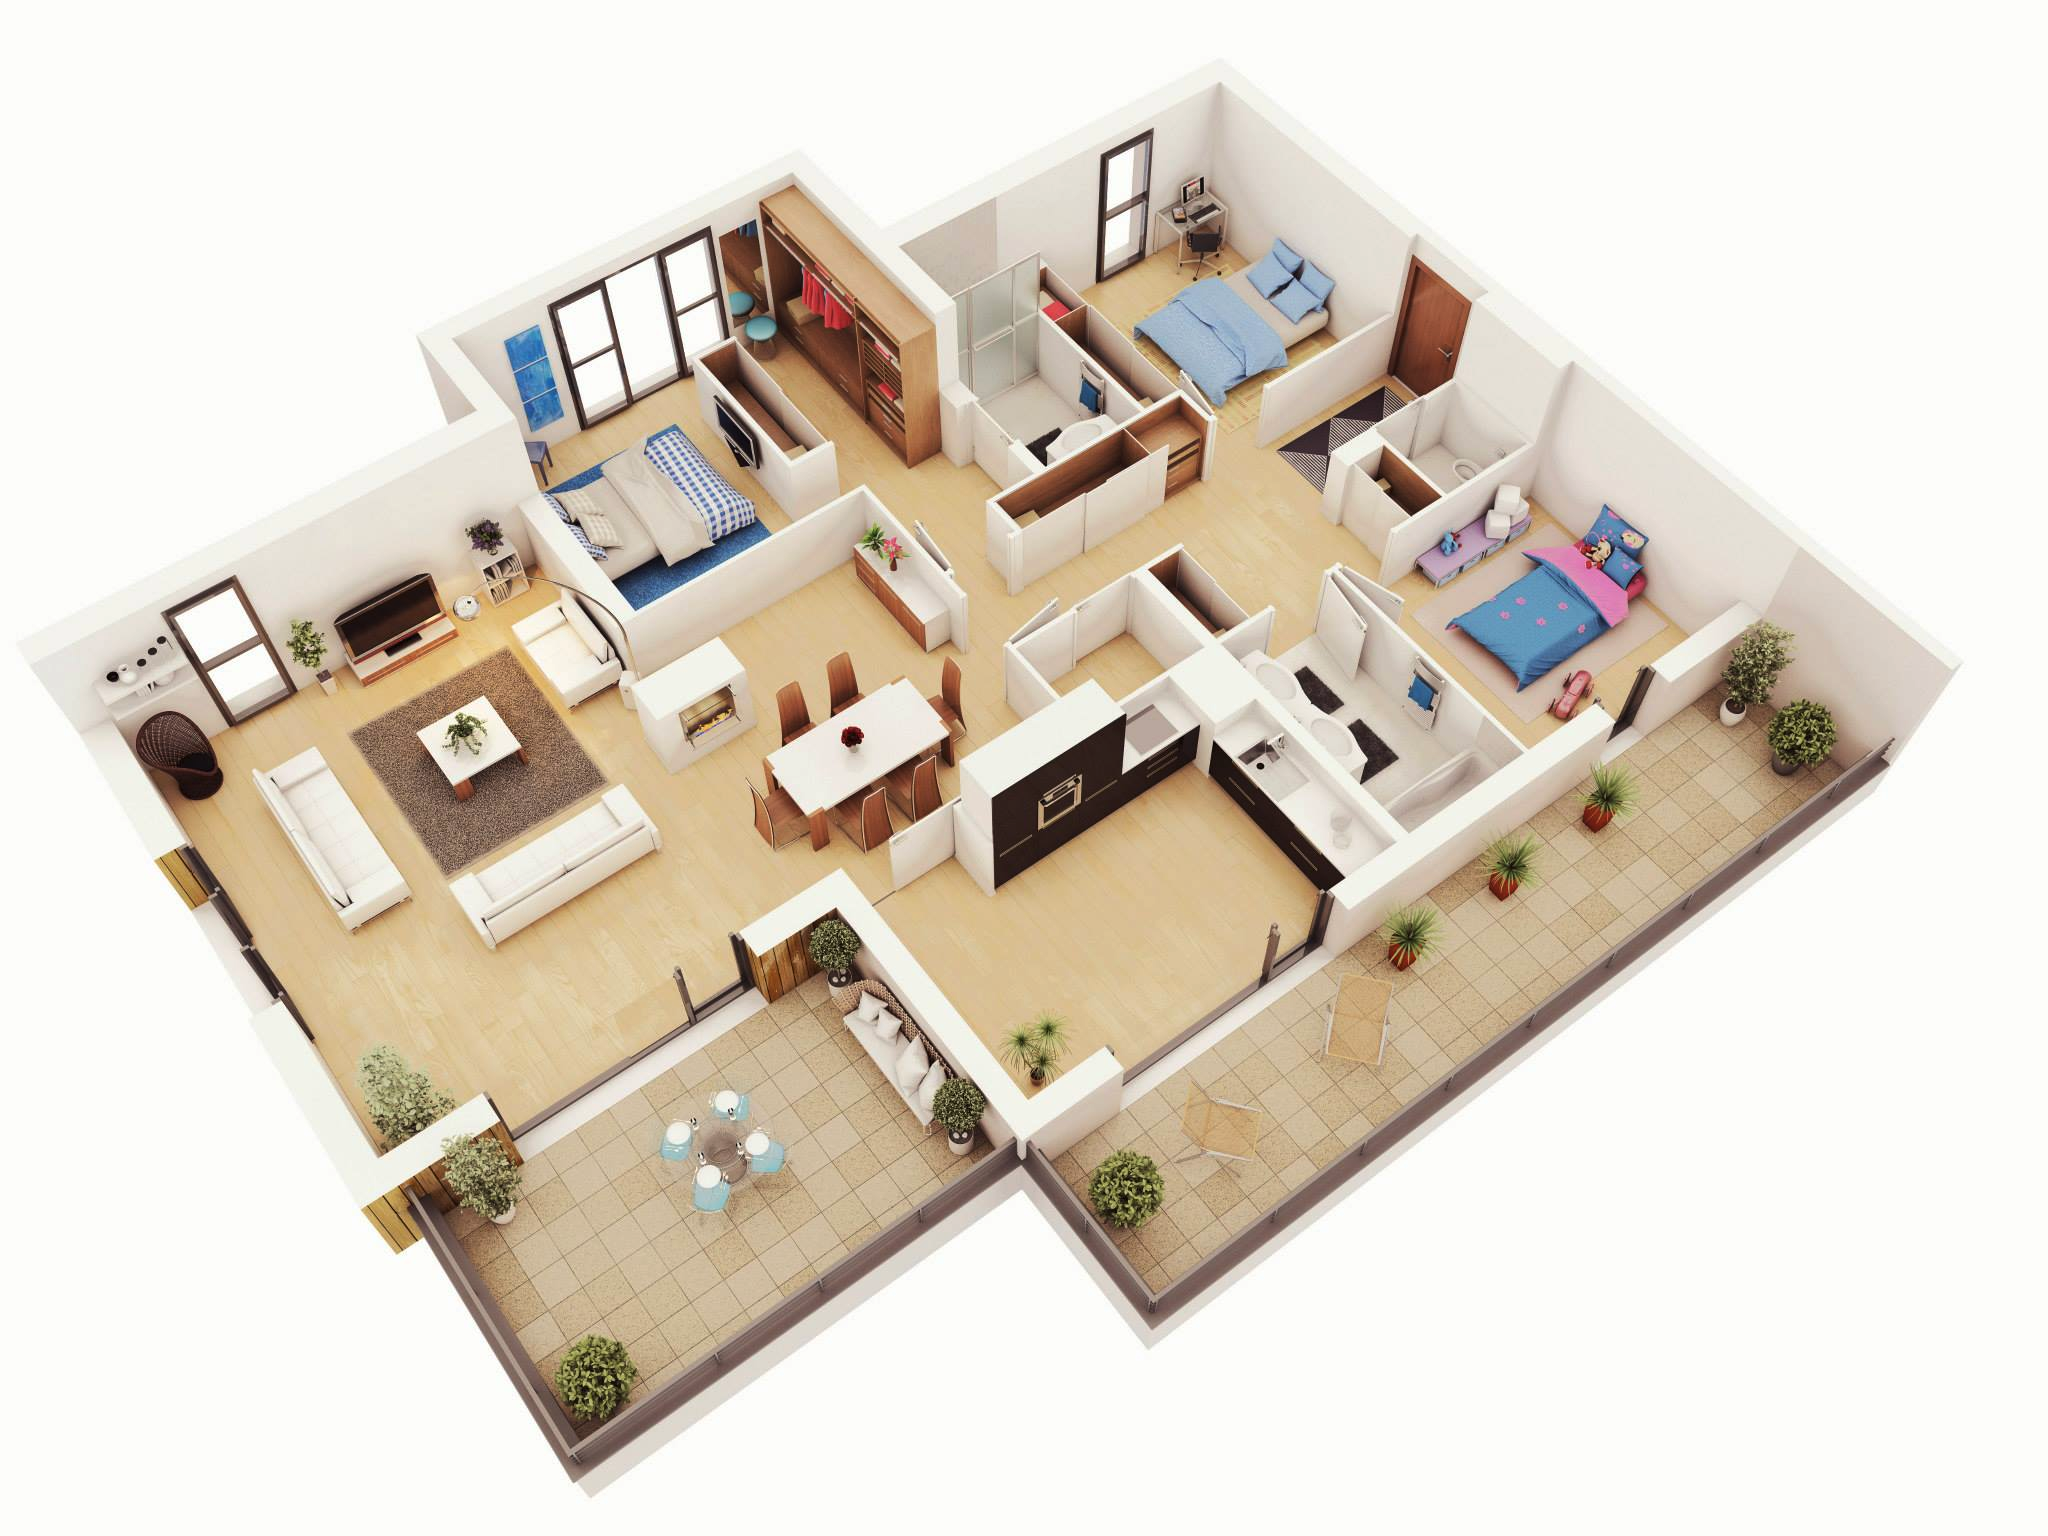 25 more 3 bedroom 3d floor plans 3 bedroom 1 bath floor plans